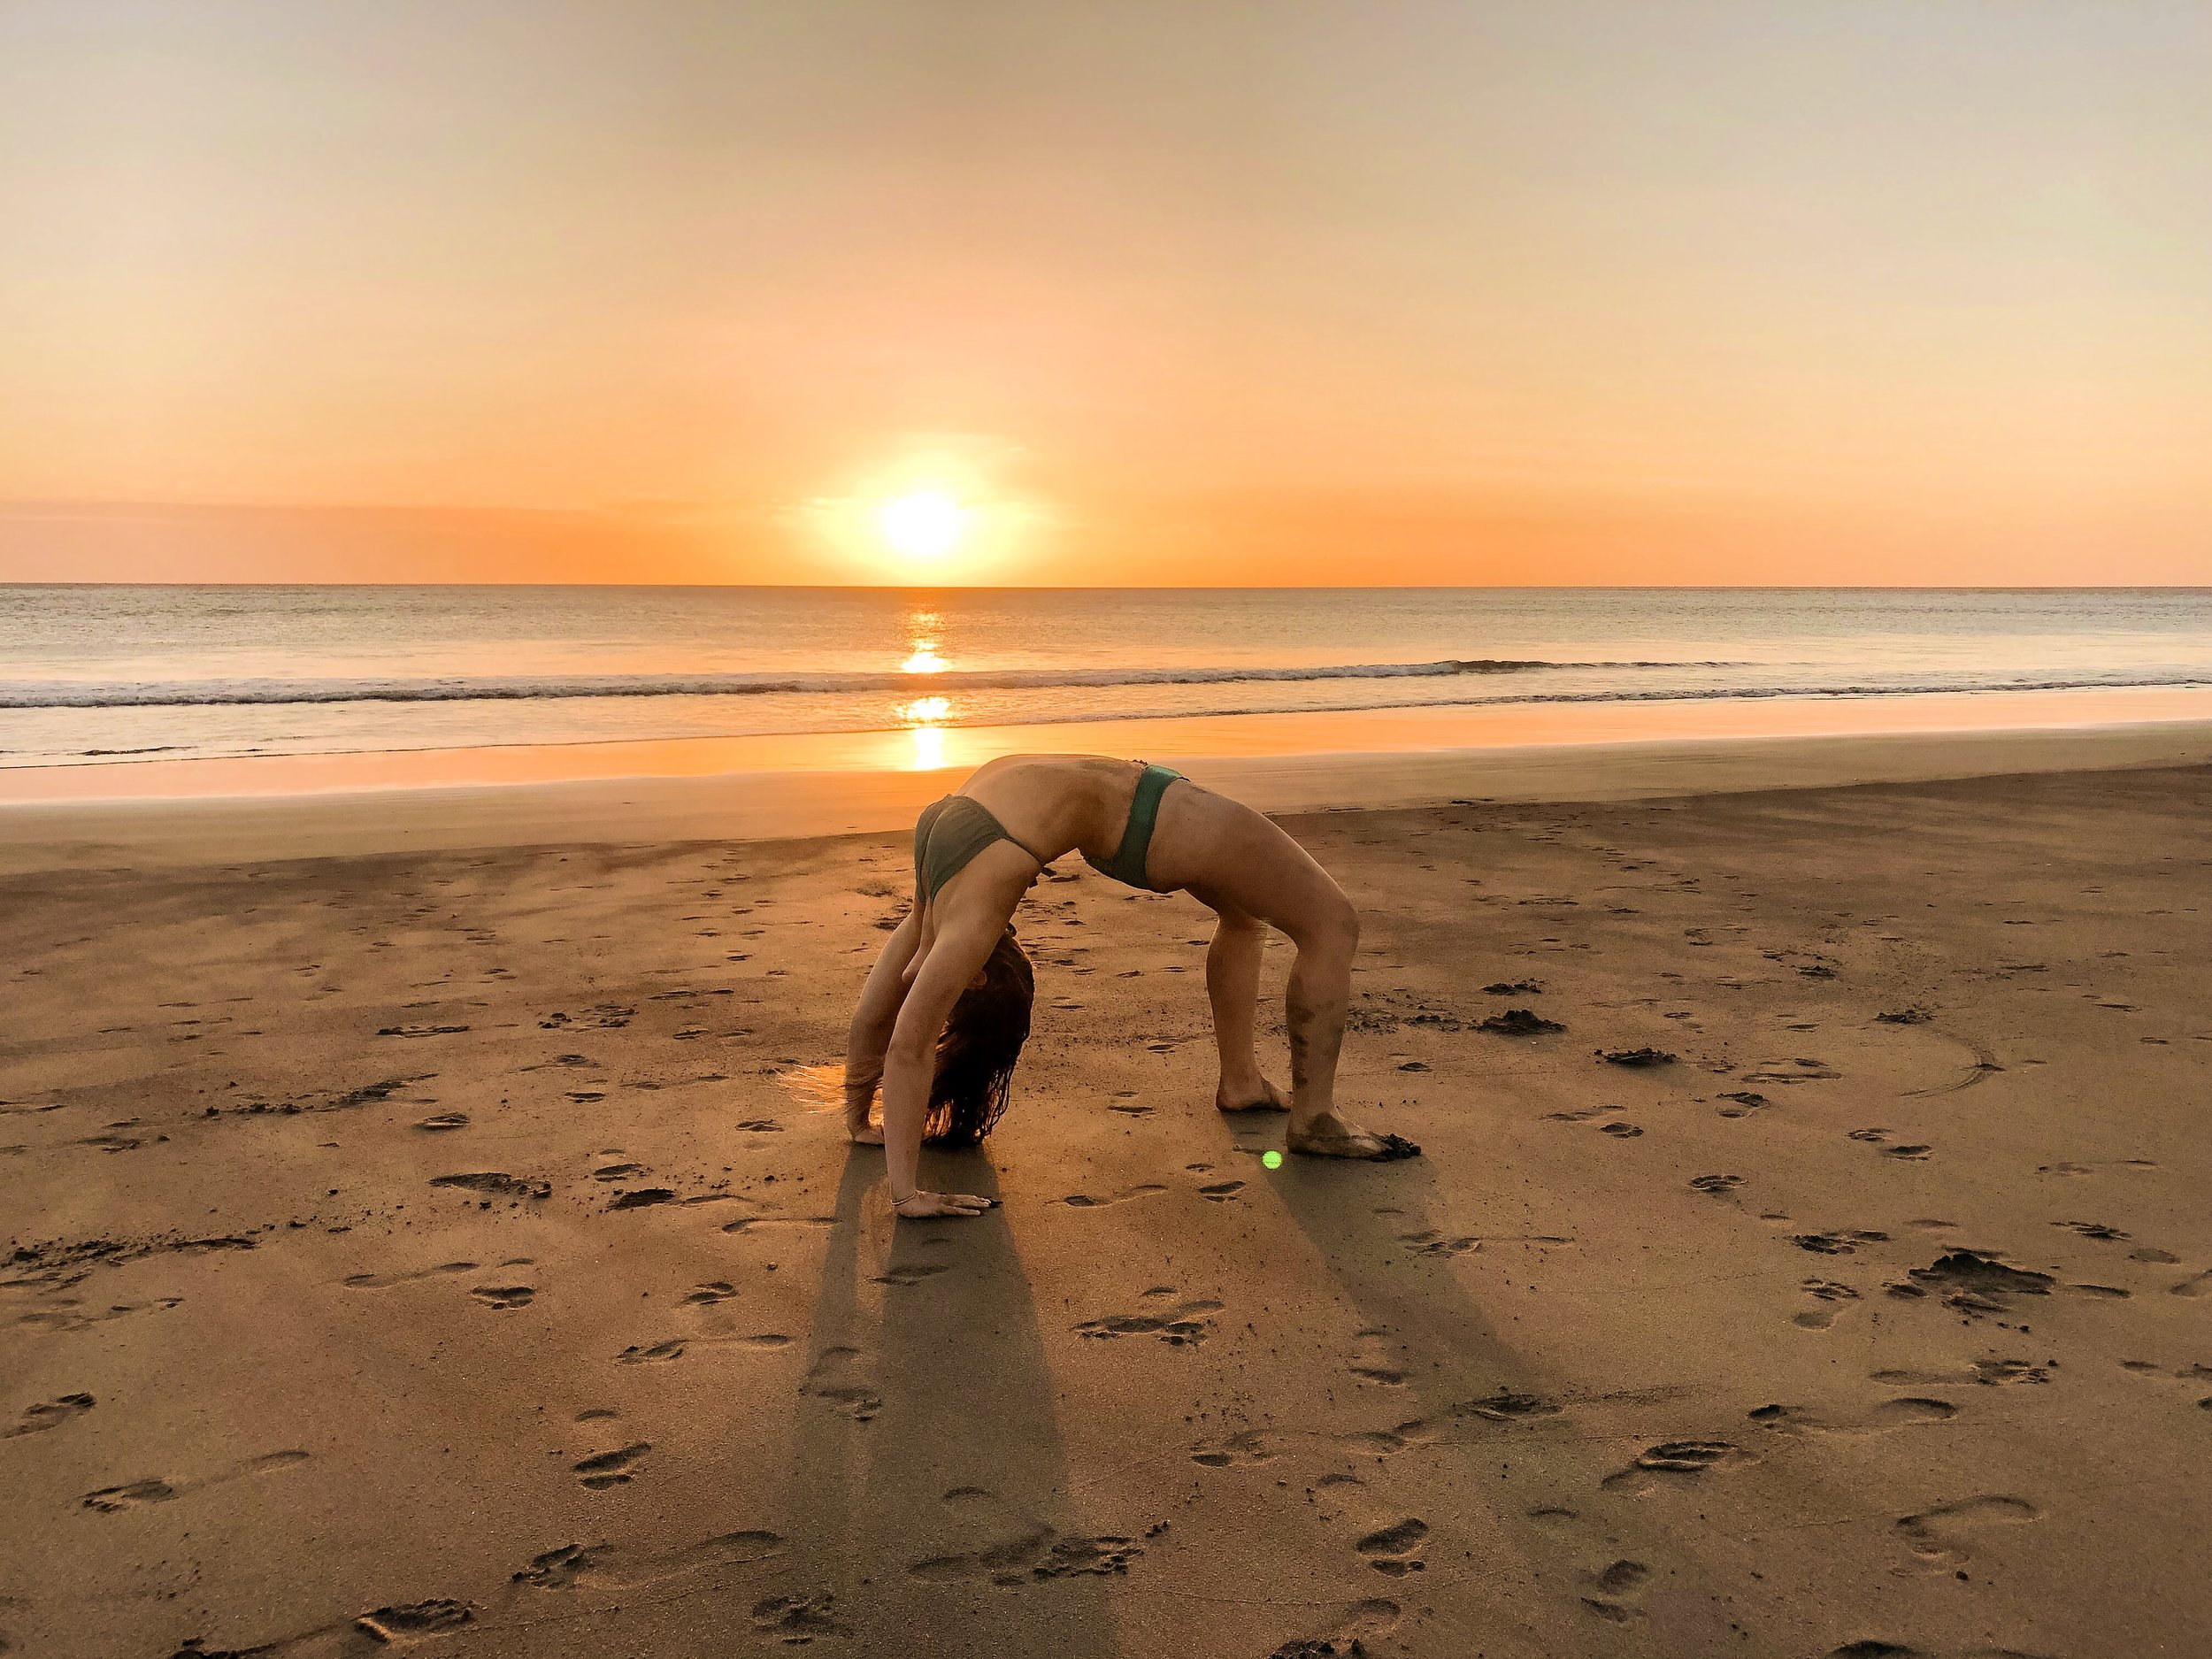 yep, that's me in costa rica. meditating / doing some yoga at sunset. normal, right?